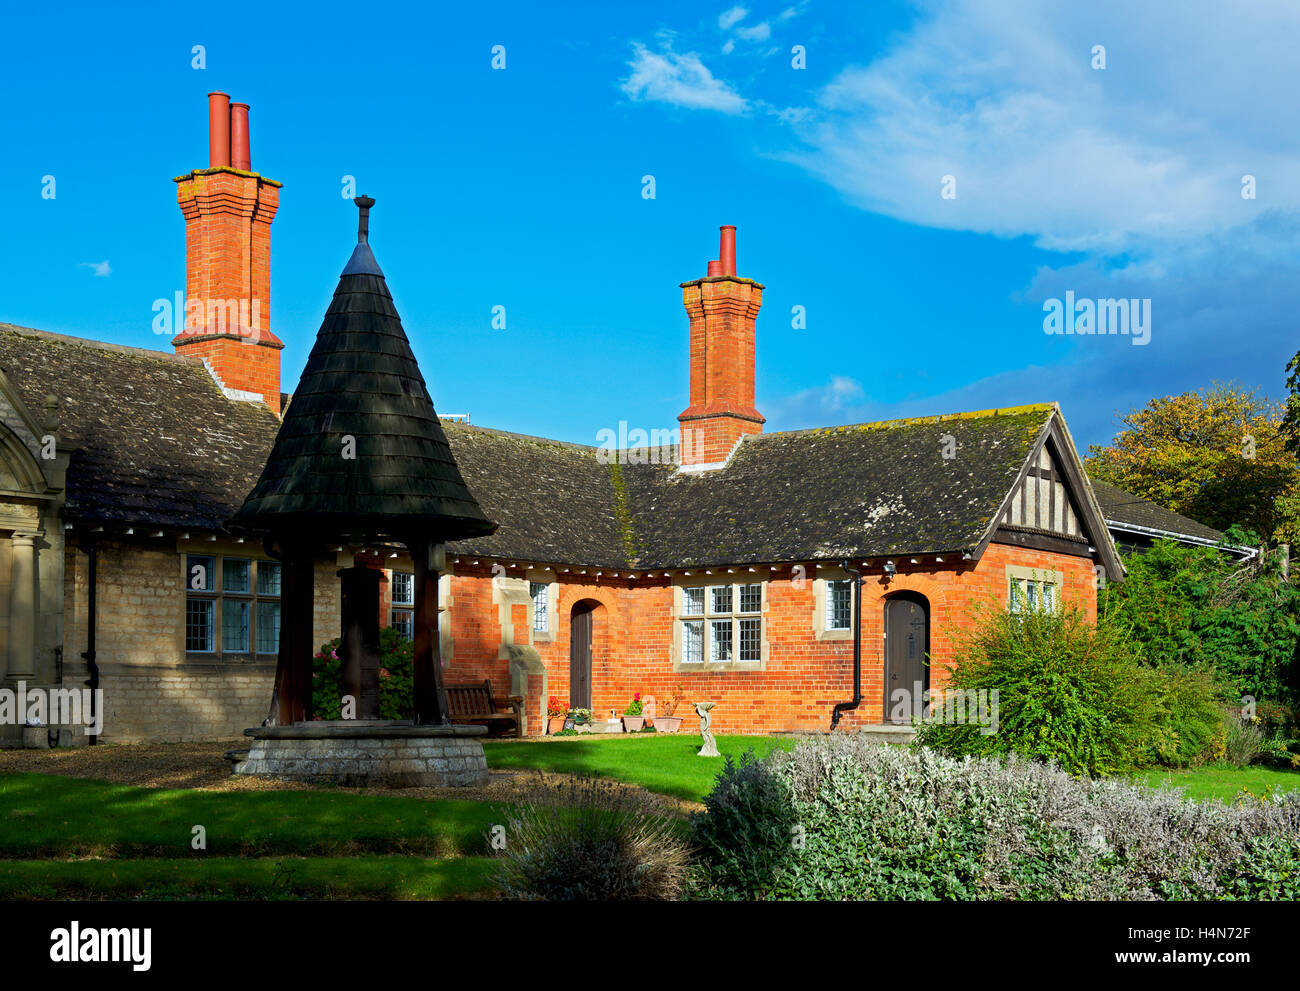 Almshouses in the village of Helpston, Cambridgeshire, England UK - Stock Image